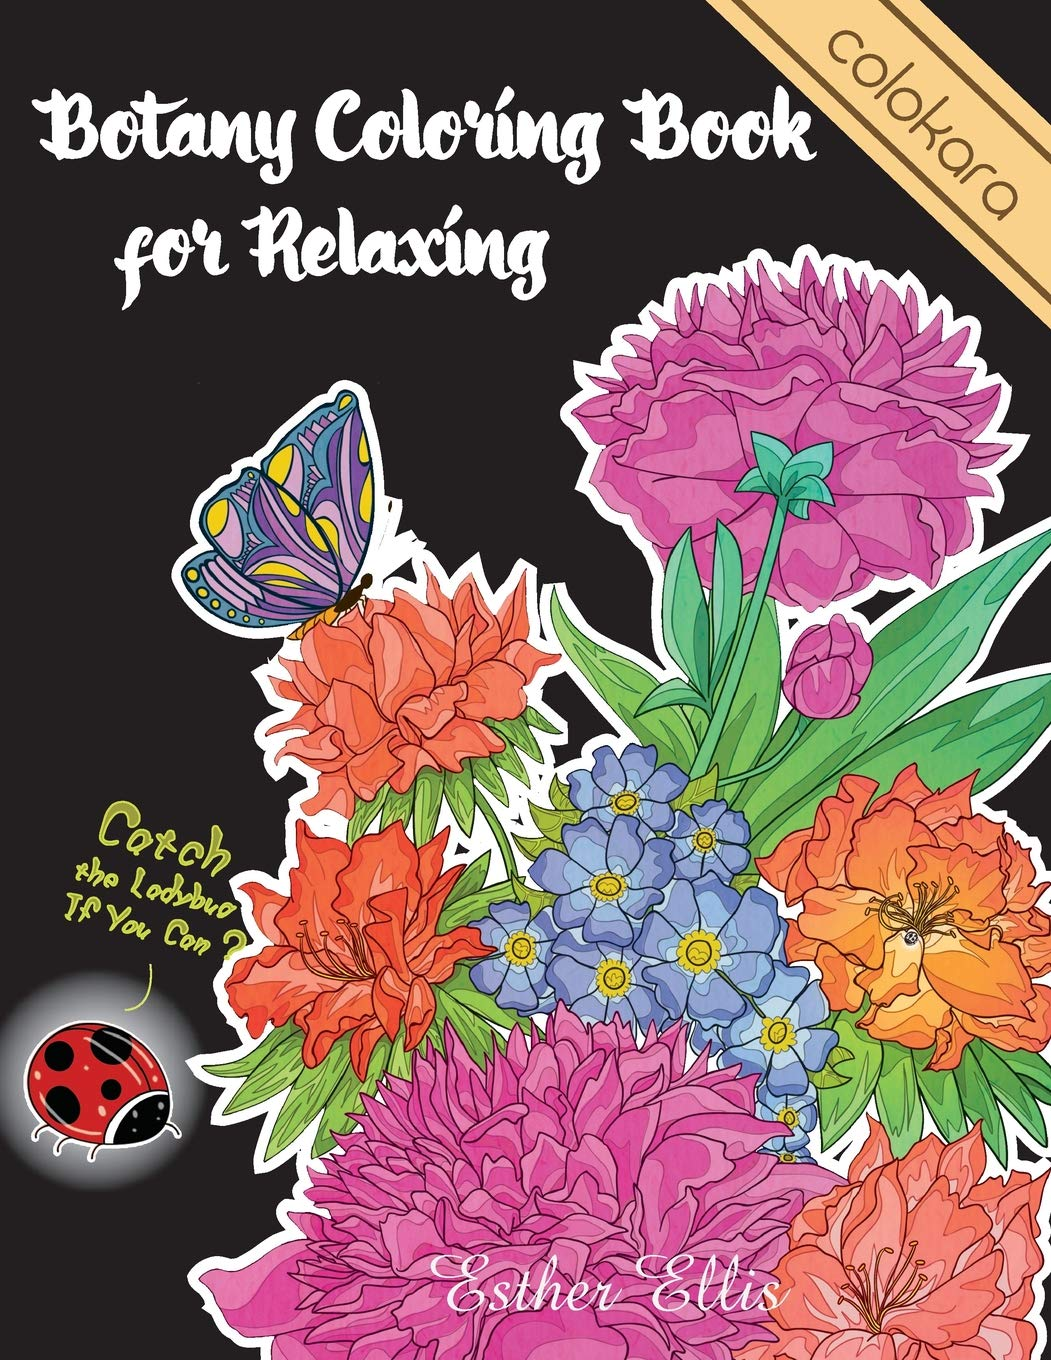 Botany Coloring Book Relaxing Relaxation product image